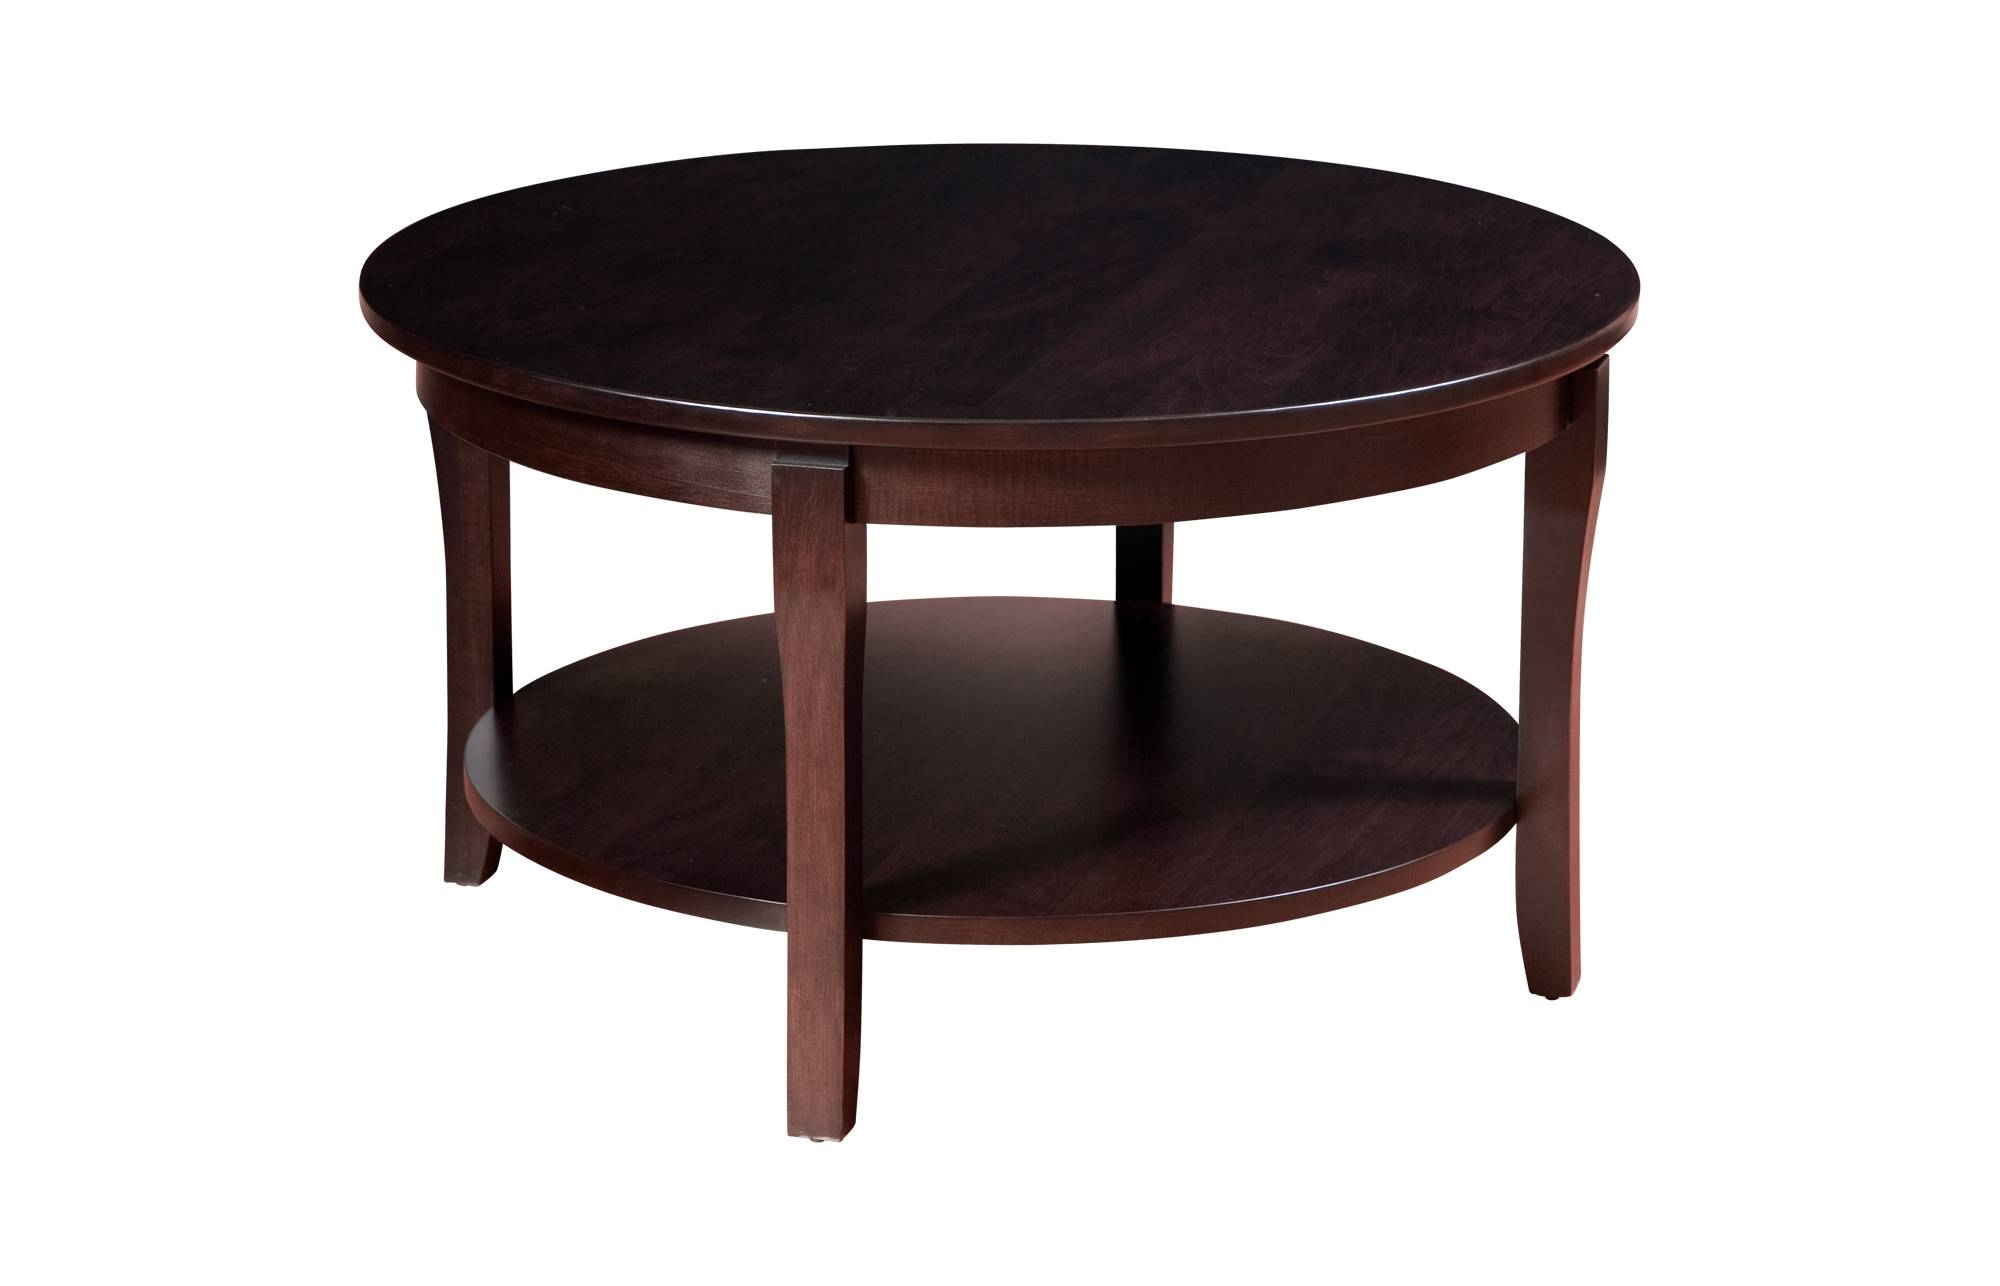 Coffee Table: Fascinating Round Wood Coffee Table Design Ideas intended for Solid Round Coffee Tables (Image 9 of 30)